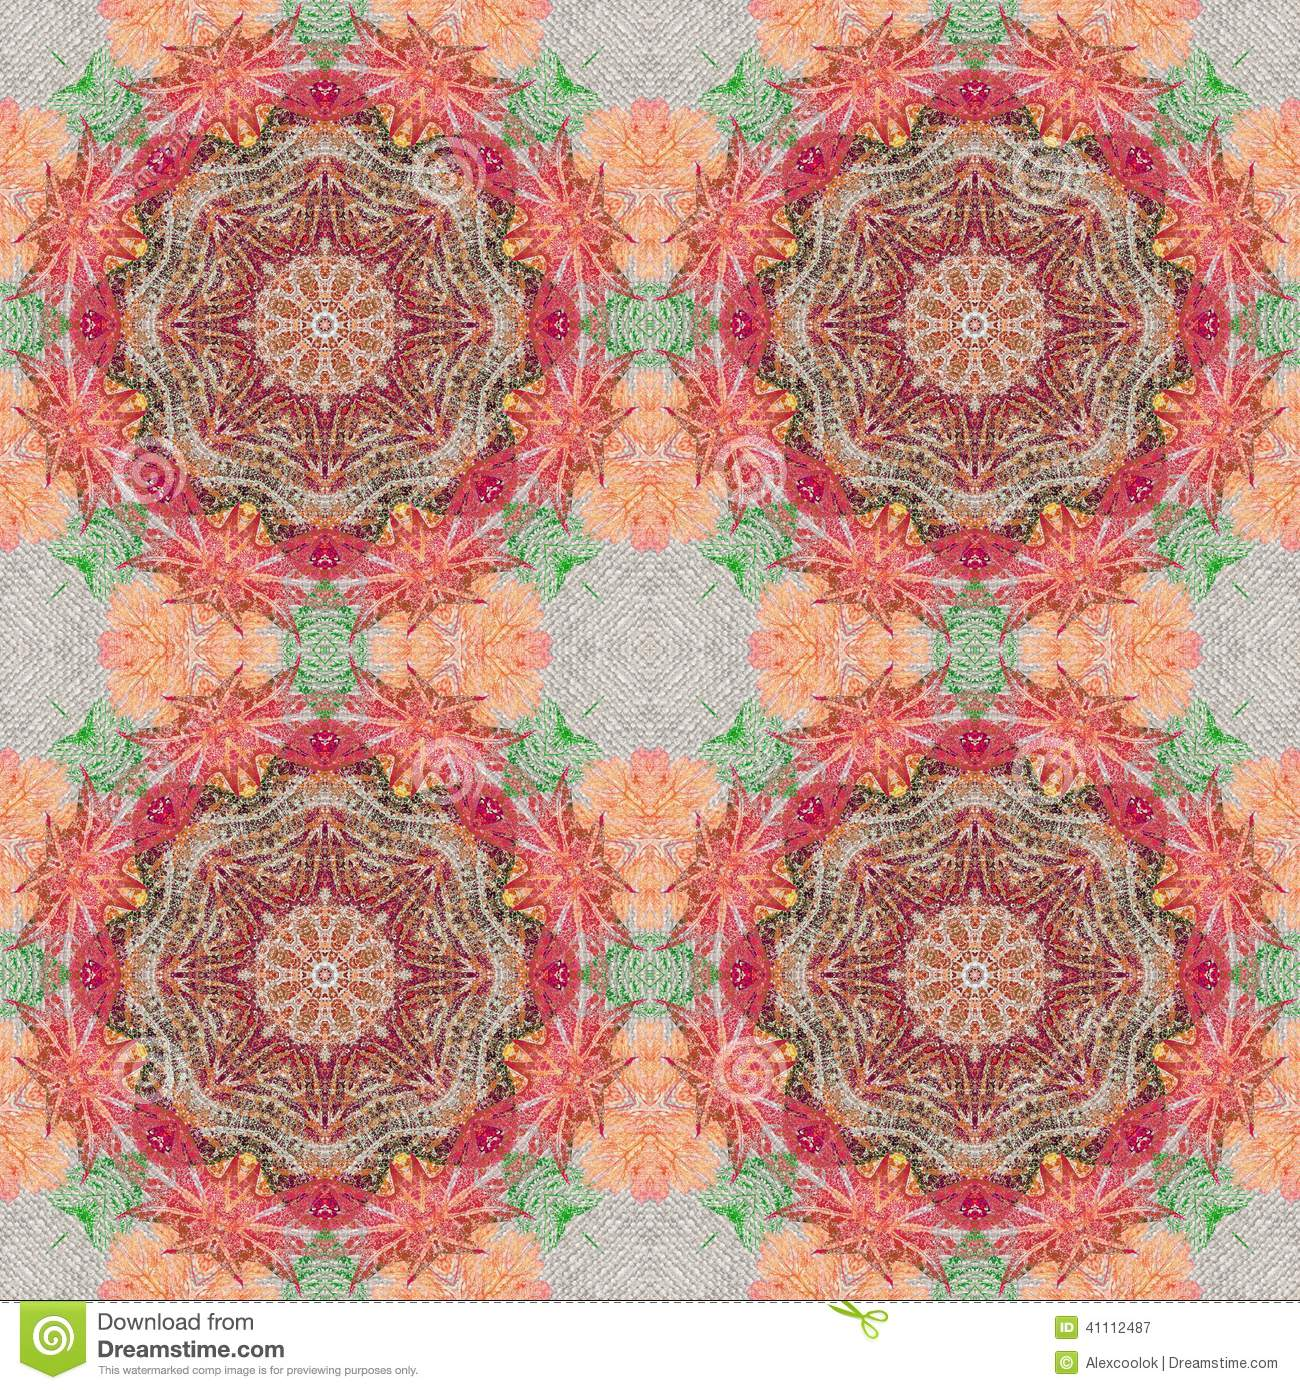 floral patterned canvas fabric - photo #7